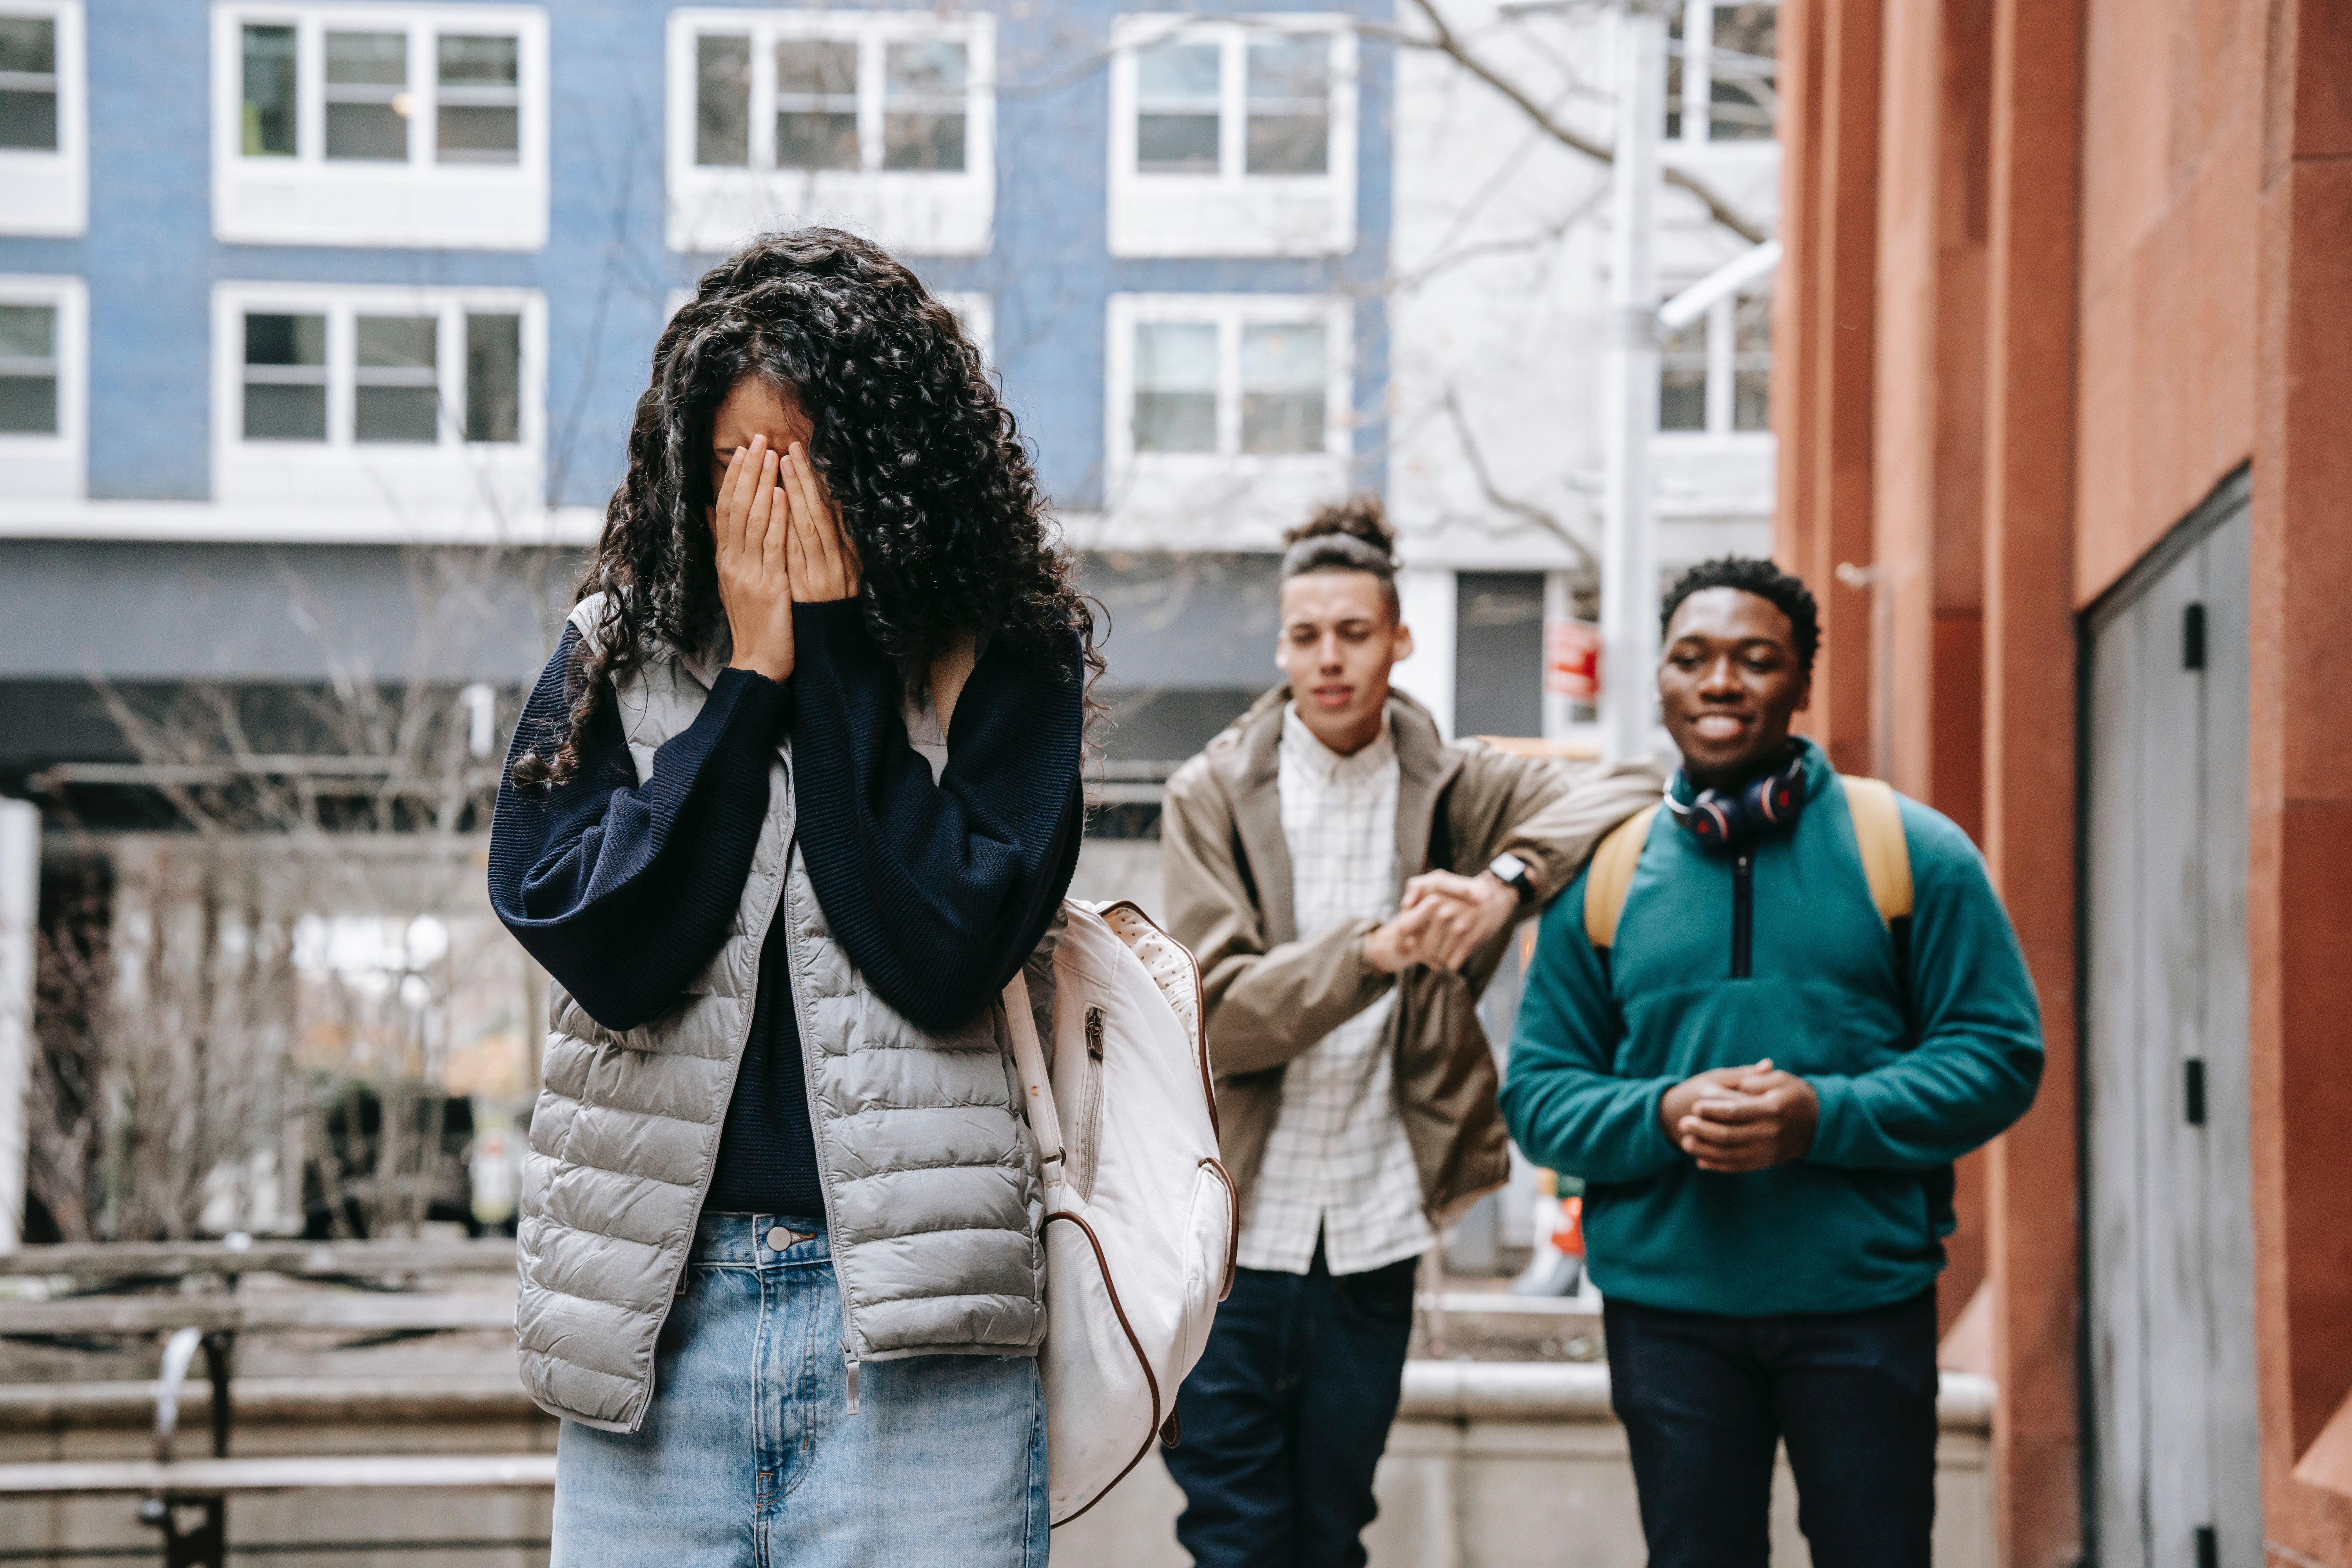 Pictured - Two male teens bullying a young woman who covers her face | Source: Pexels